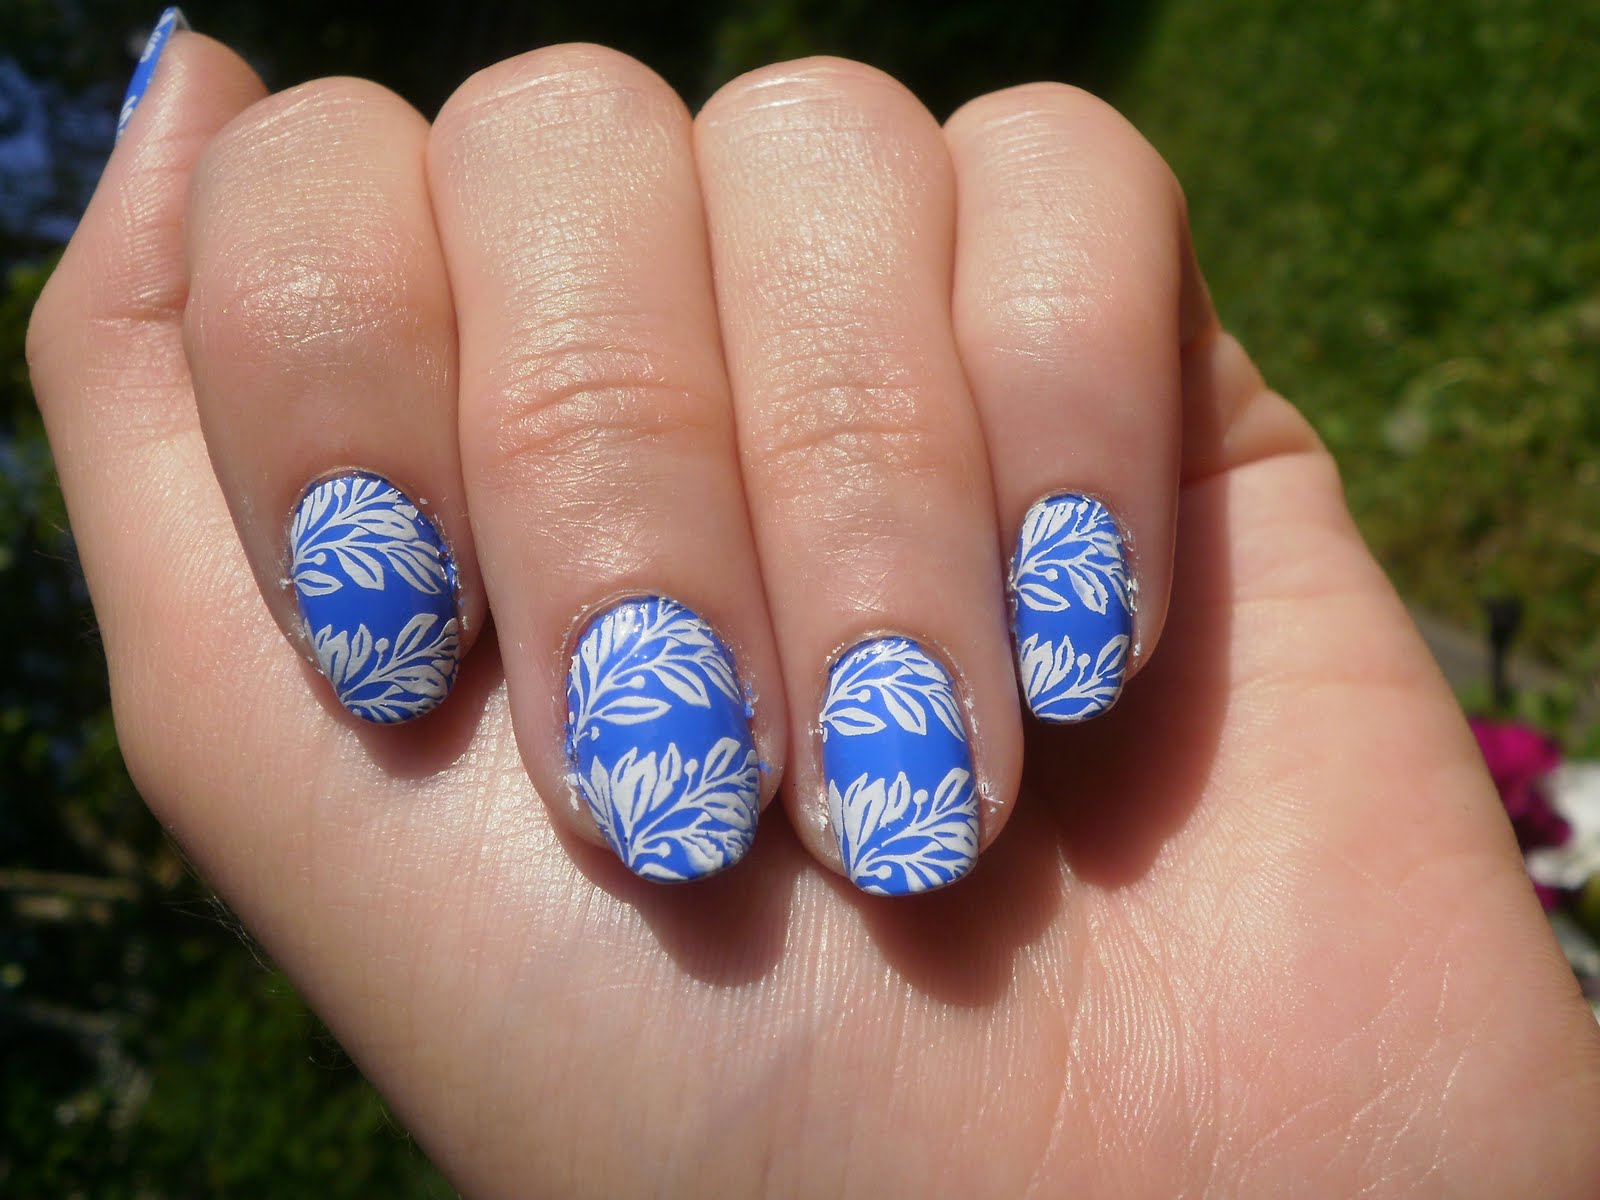 Nail Design Blue And White - Nail Arts